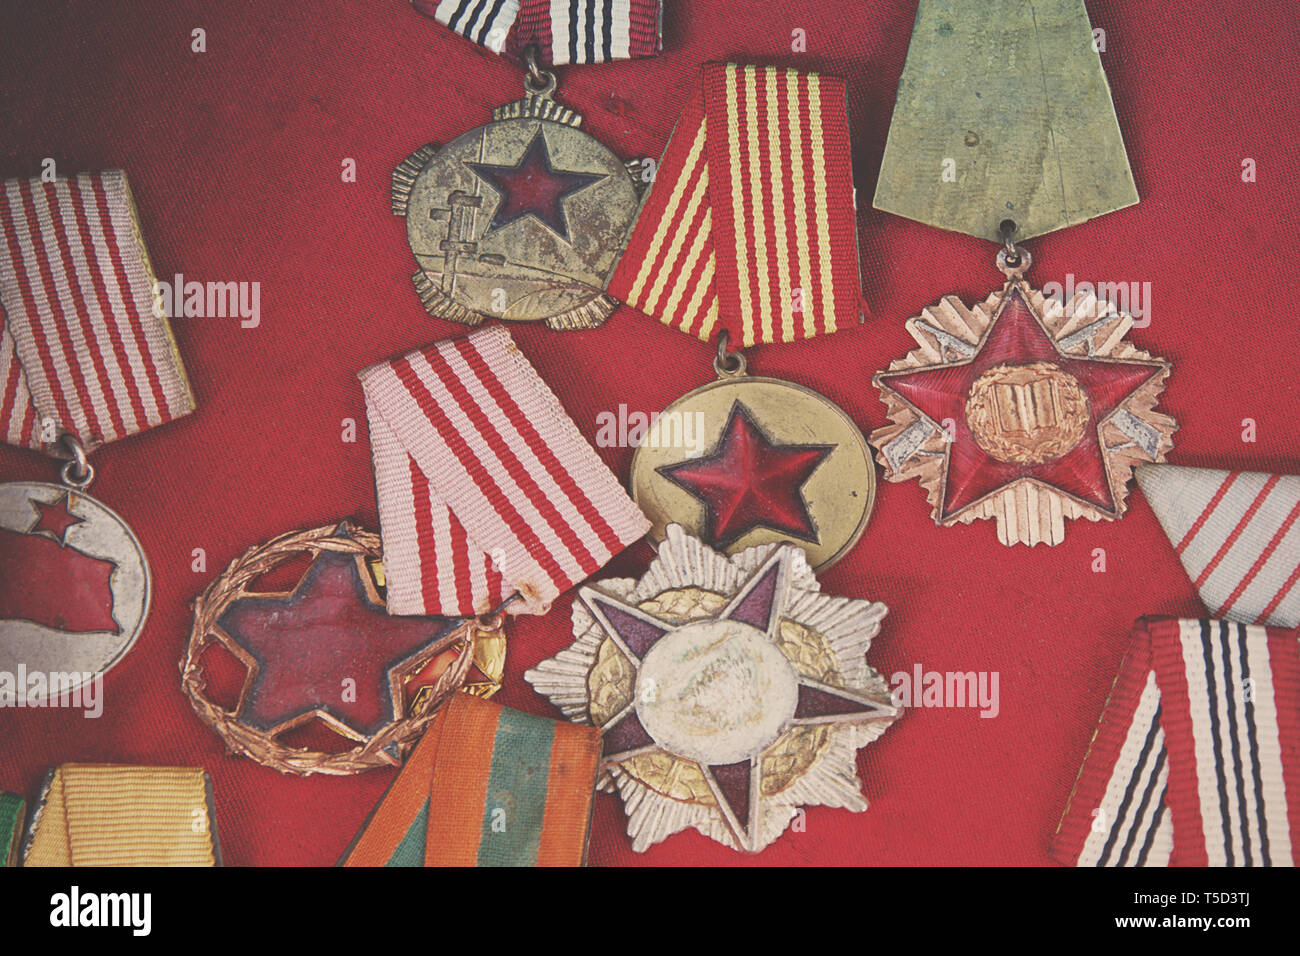 ancient medals of the communist era, albania - Stock Image